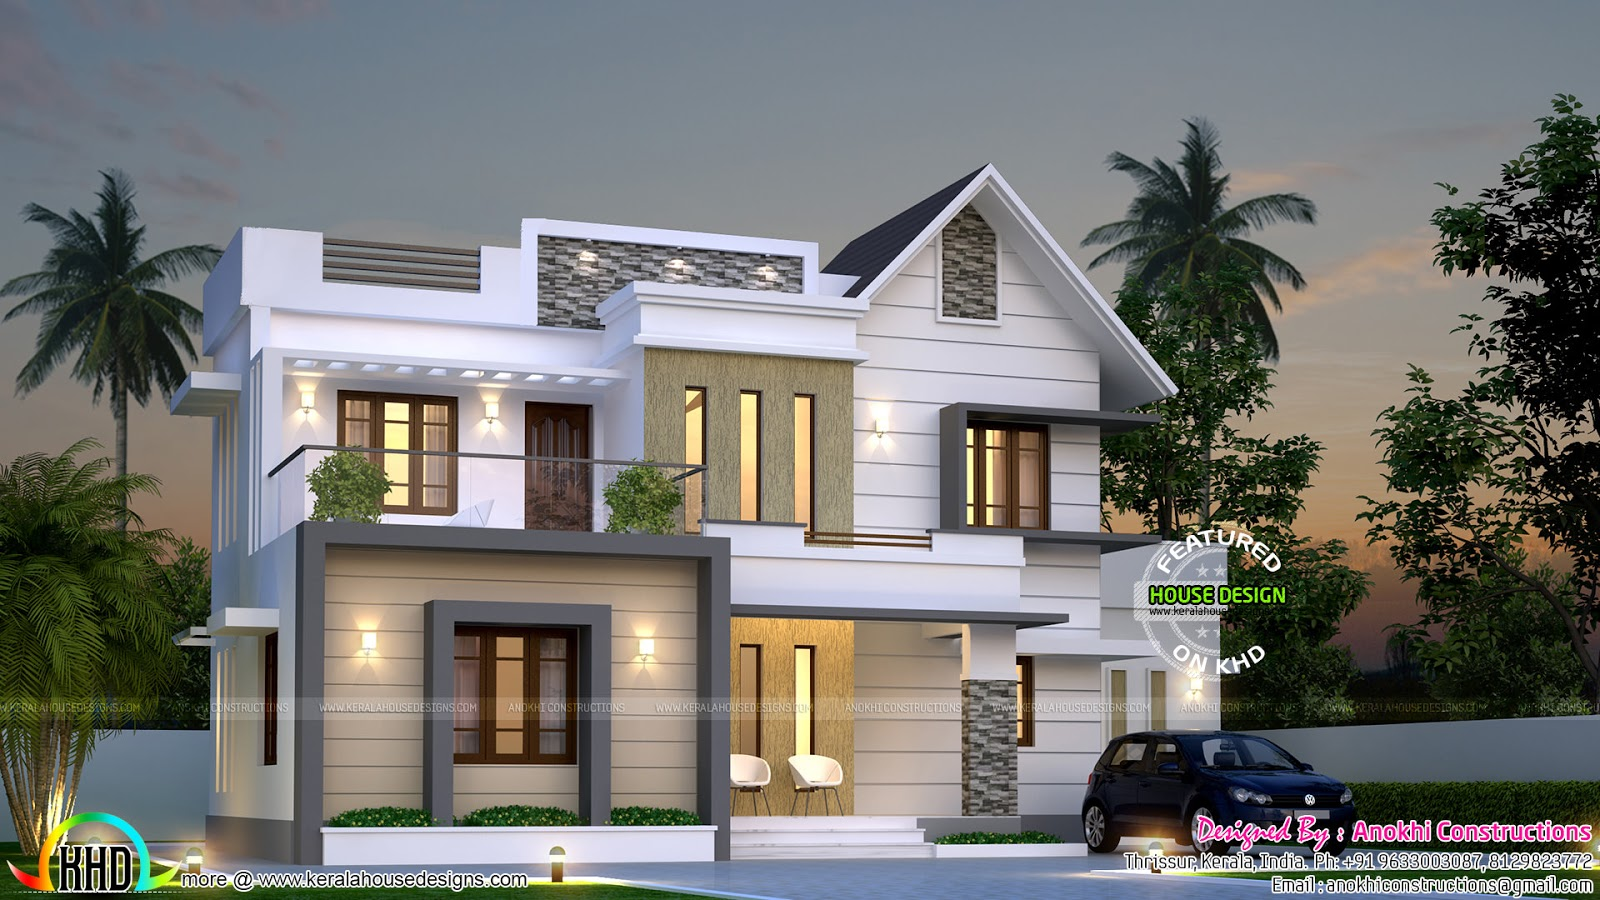 Simple and elegant villa kerala home design and floor plans for Elegant home design